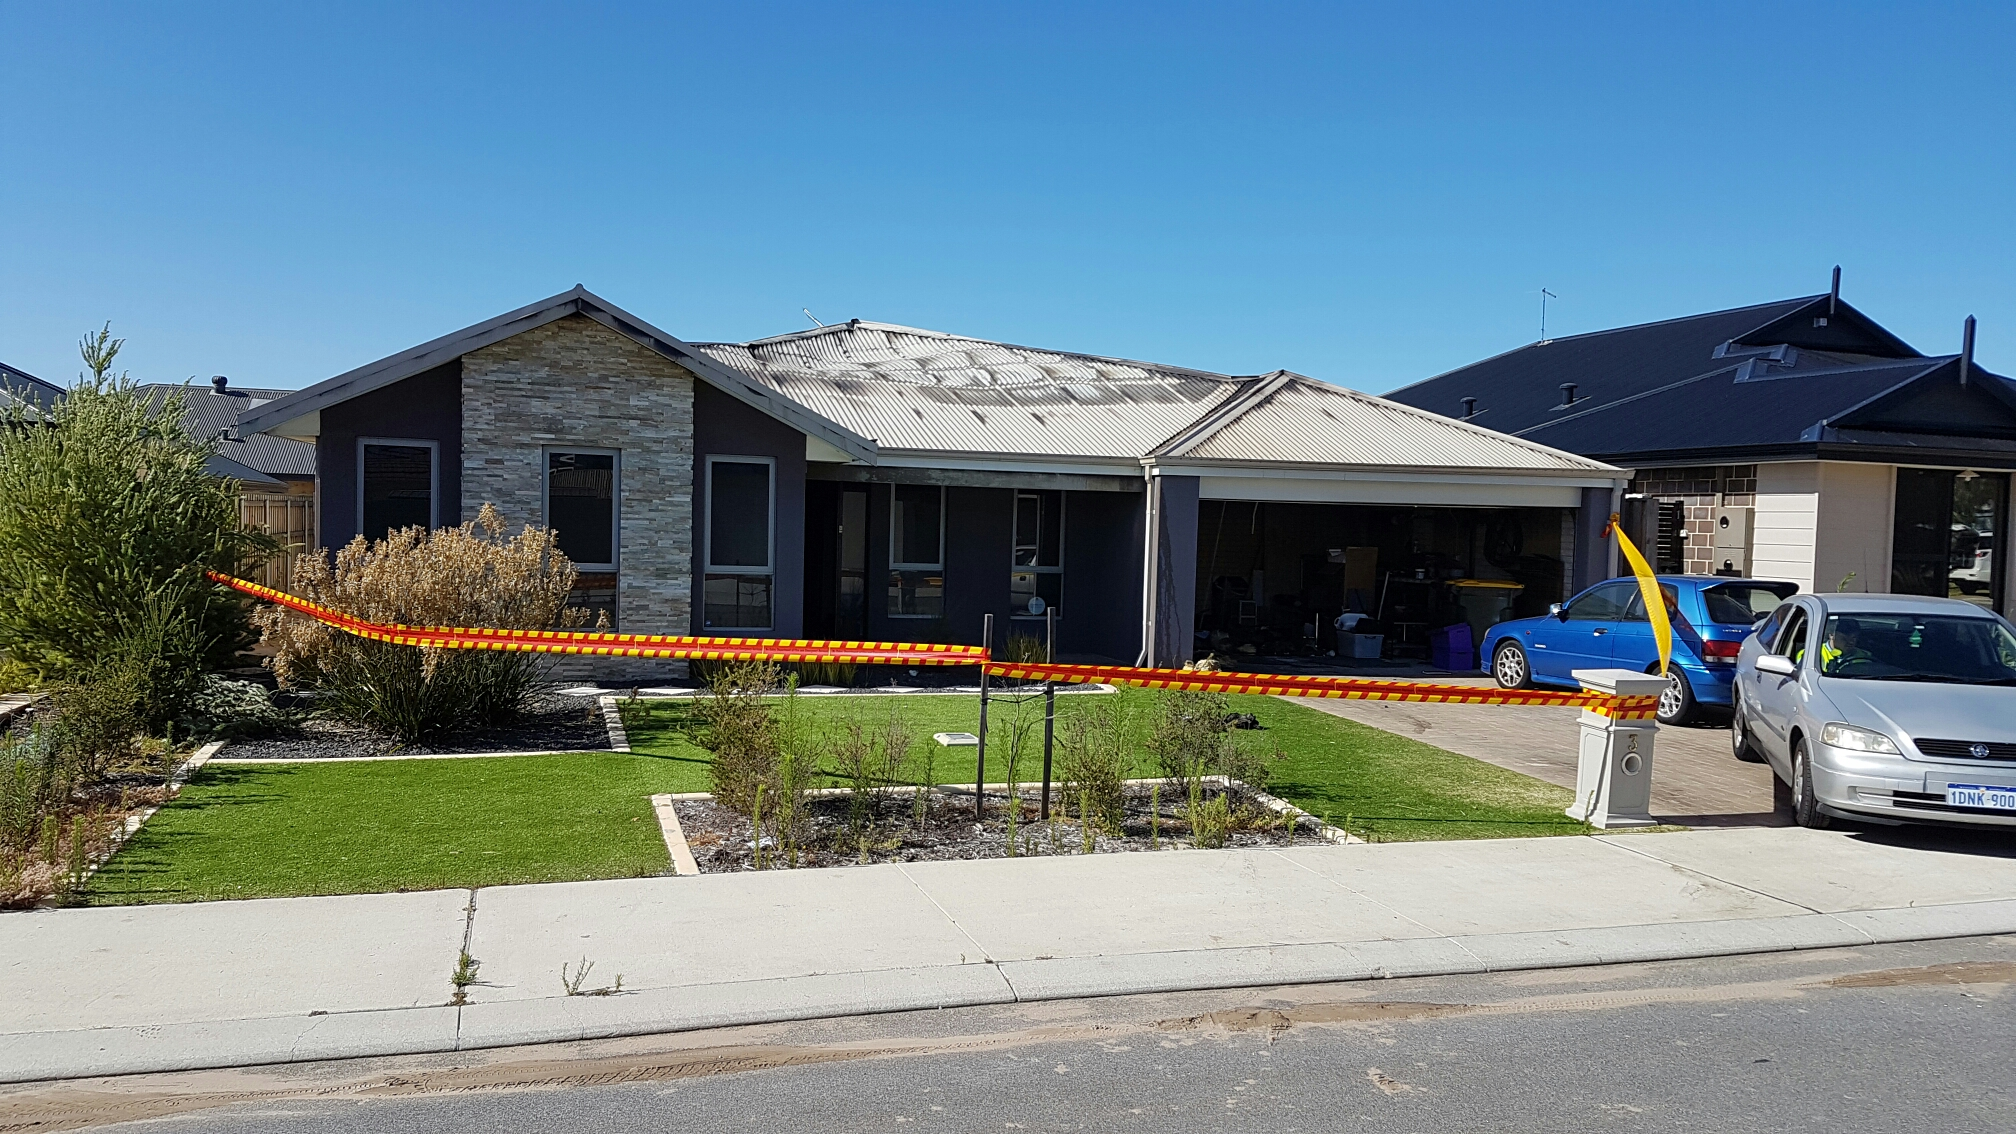 Dog perishes in Ellenbrook house fire, with damage estimated at $400,000